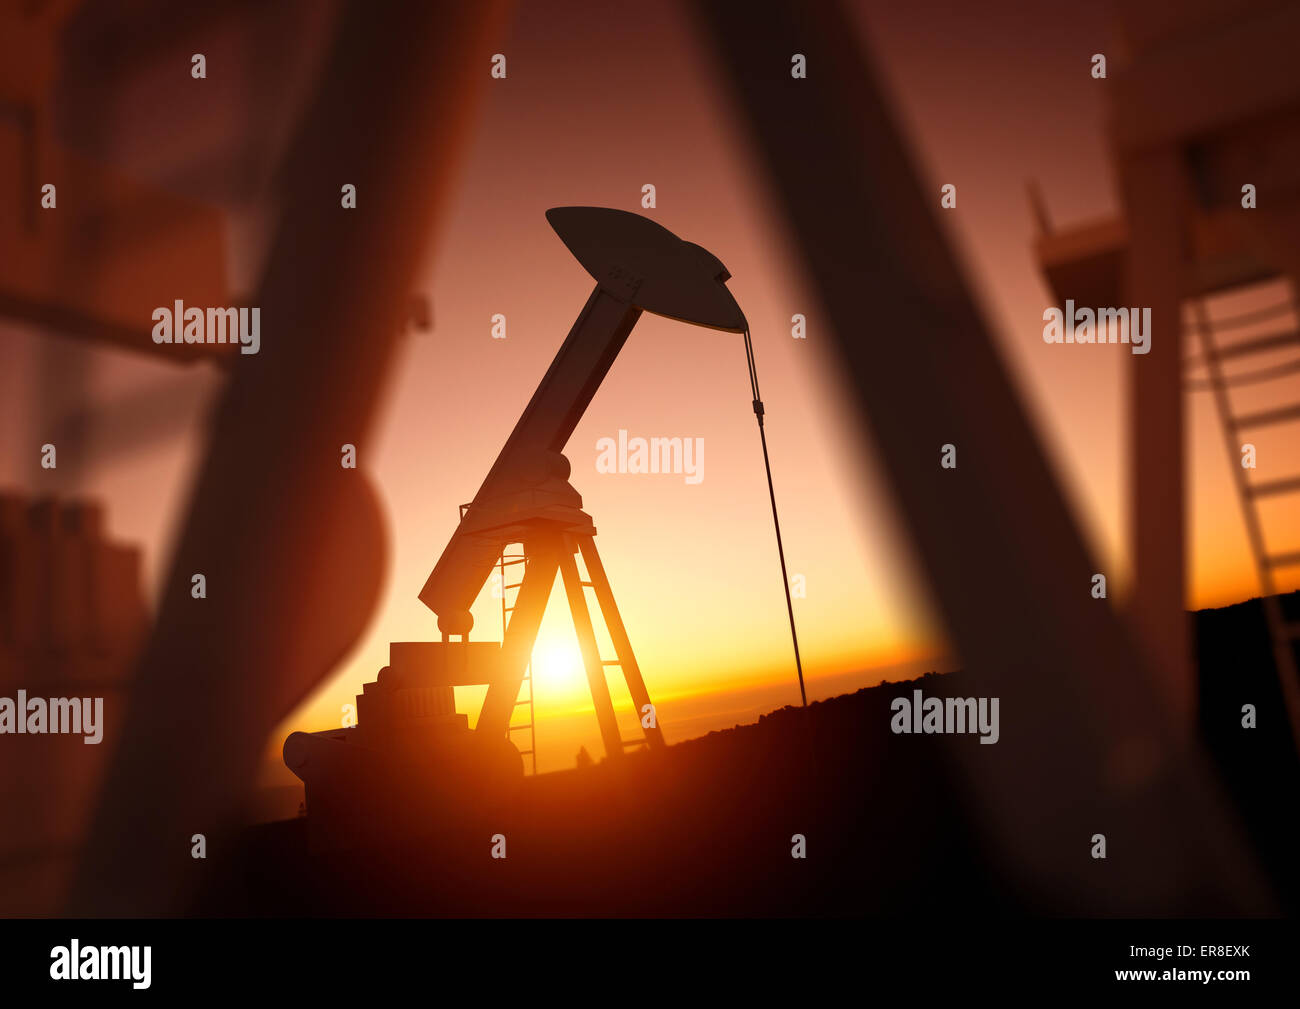 Oil and Energy Industry. A field of oil pumps against a sunset. Oil prices, energy and economic commodities. - Stock Image